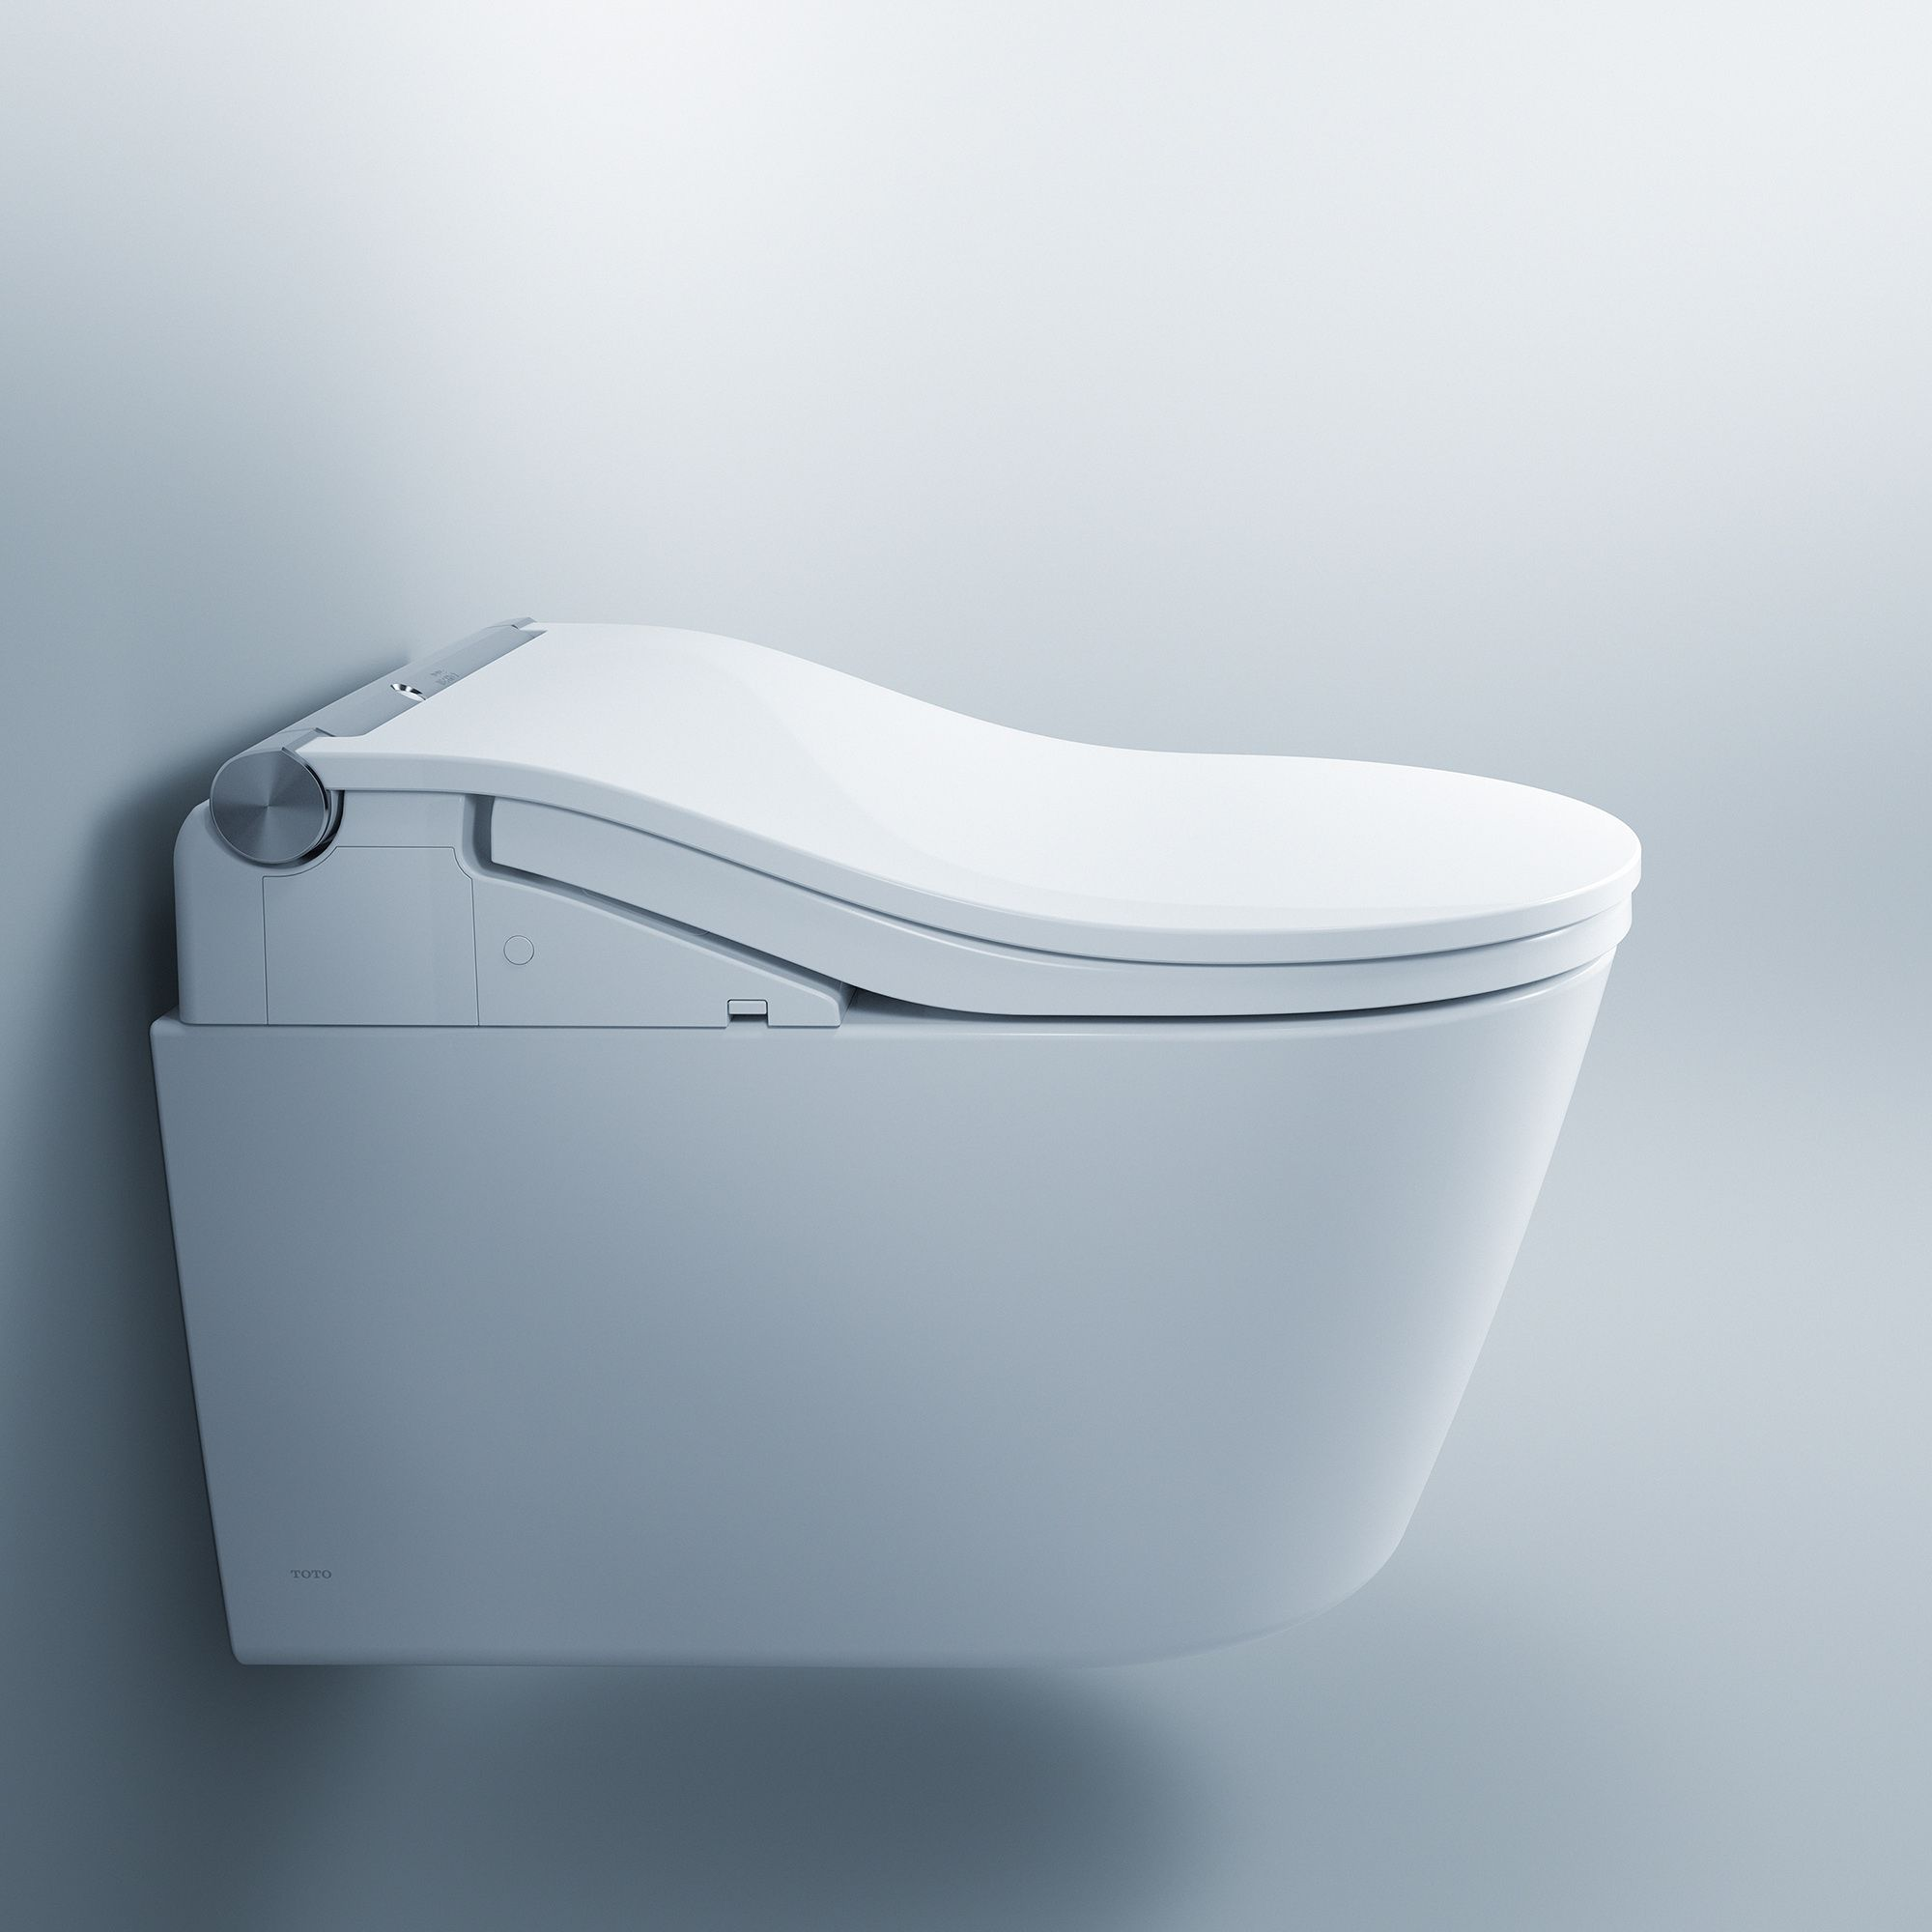 Toto Washlet Rw Incl Remote Control Toto Rp Wc Combination In